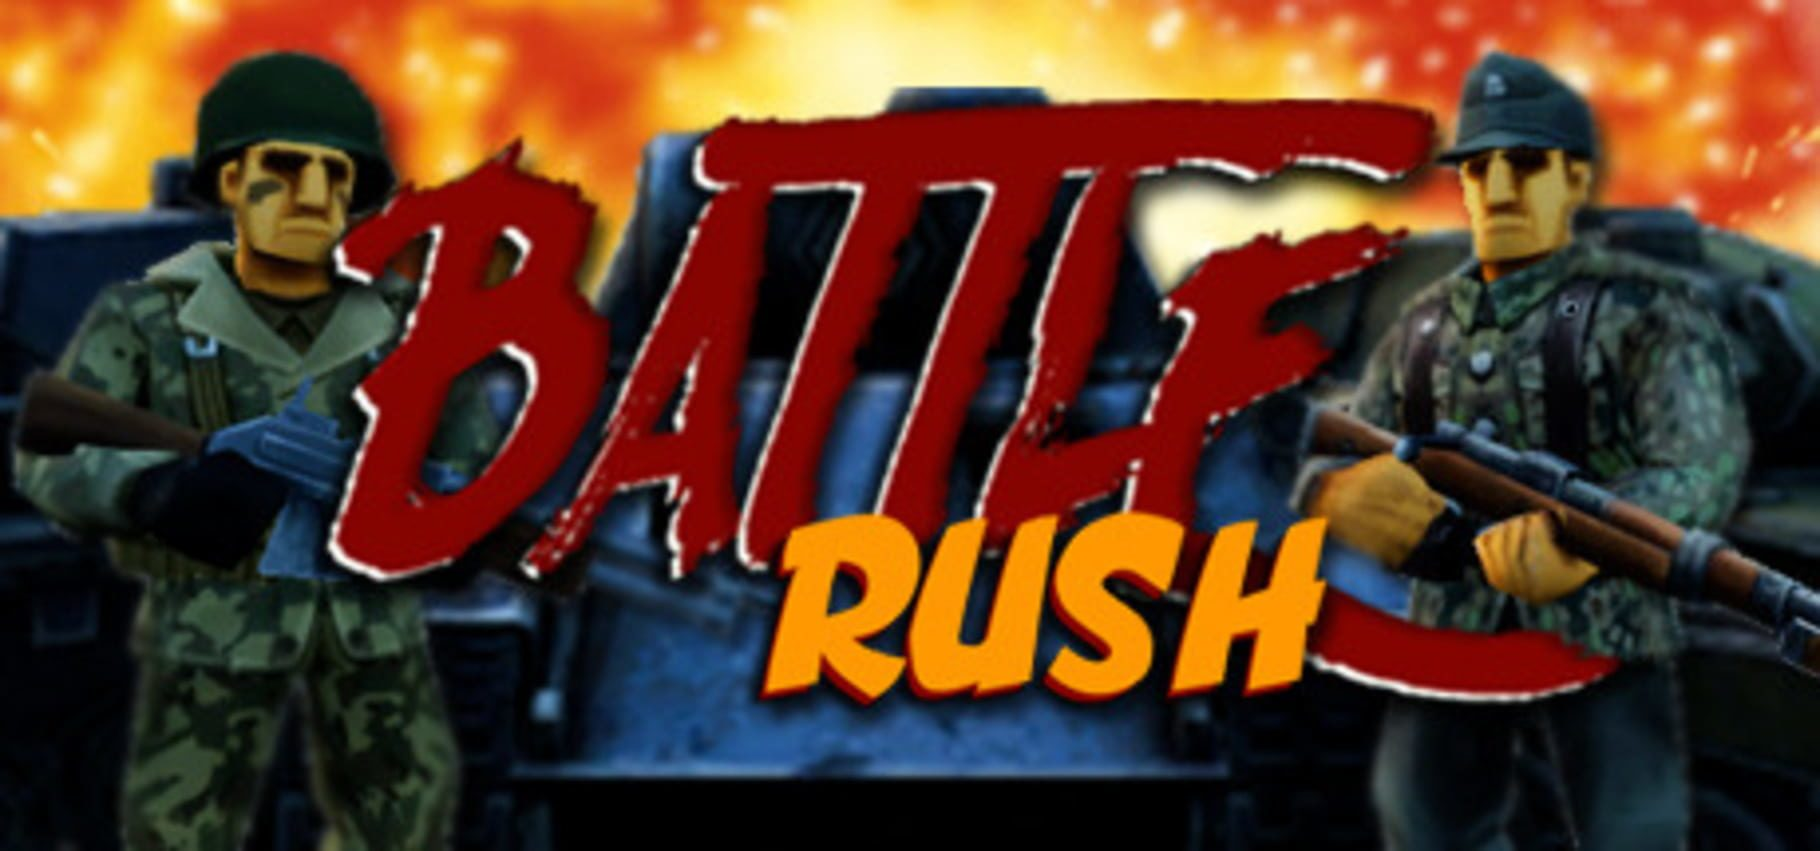 buy BattleRush cd key for pc platform